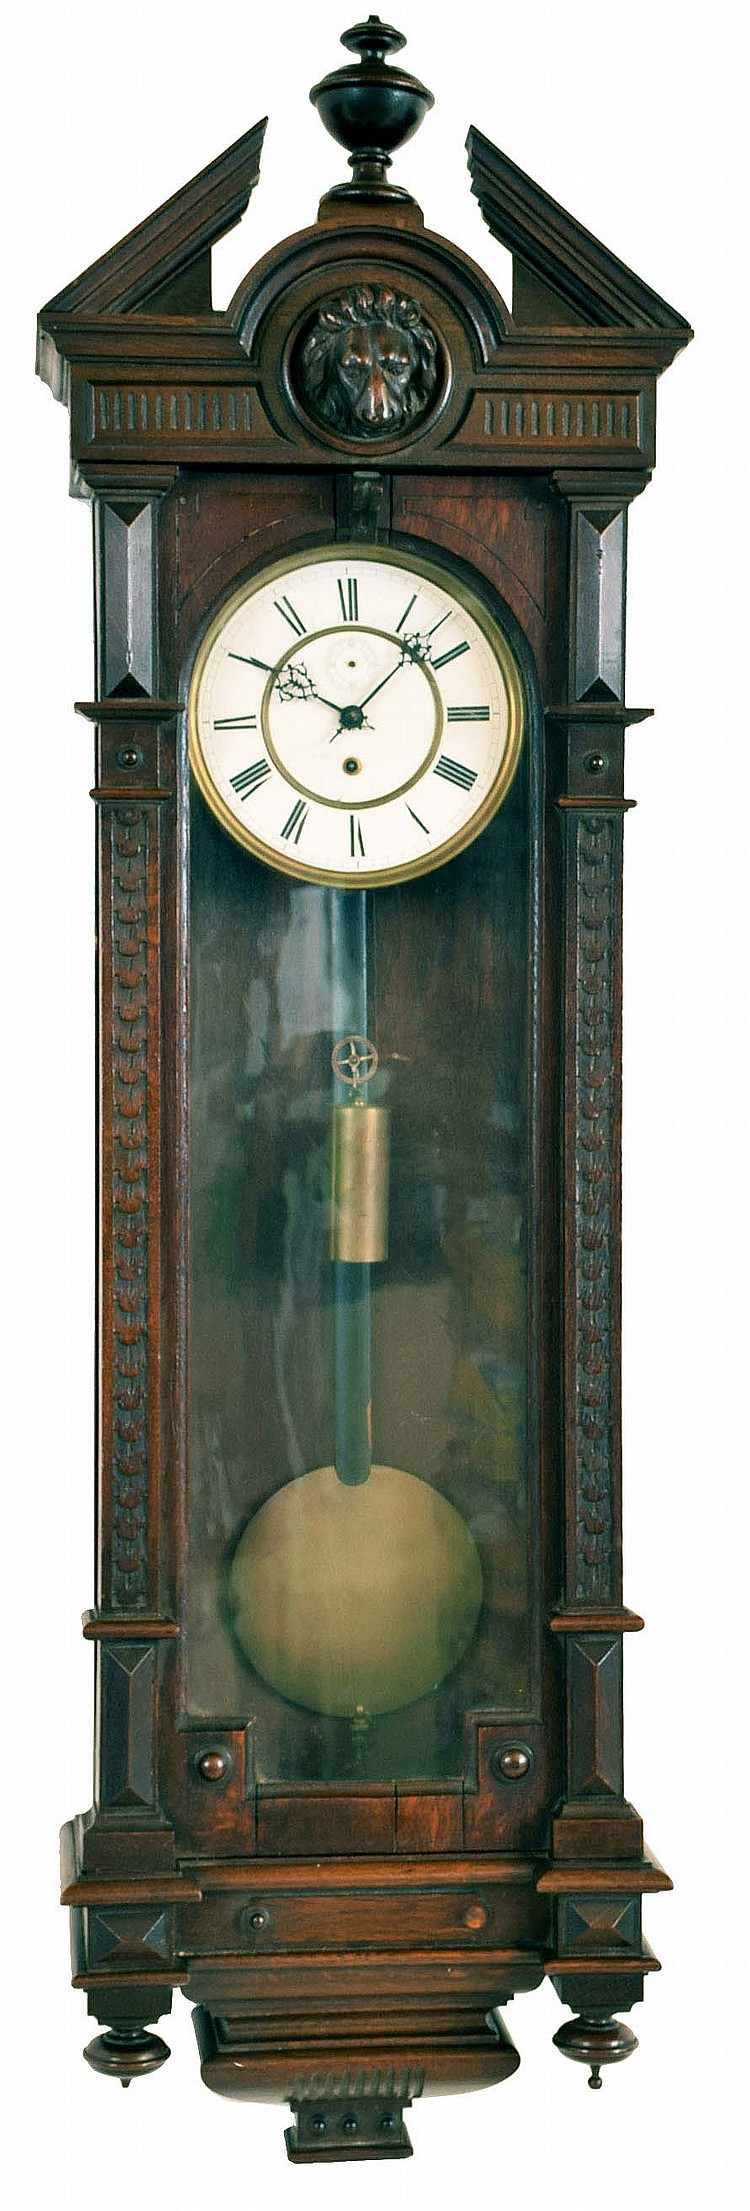 Clocks- 2 (Two) Vienna regulator 8 day wall clocks; unsigned antique oak one weight time only ; Hermle modern quarter- chime (not Westminster) with weight- driven time train, spring- driven strike and chime trains